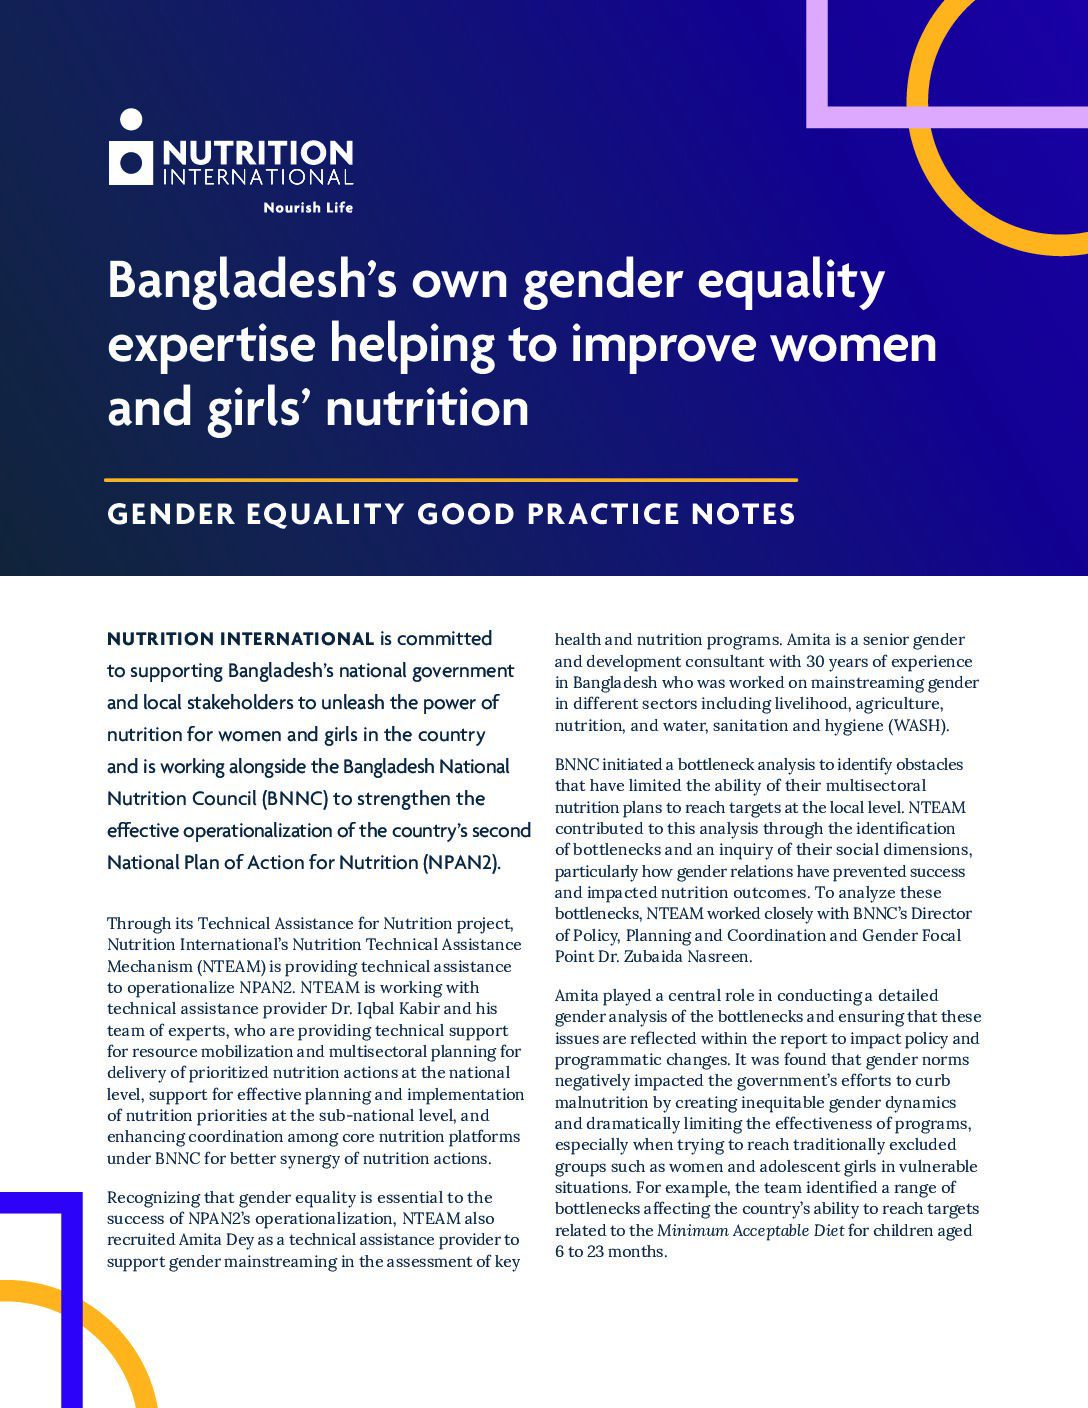 Bangladesh's own gender equality expertise helping to improve women and girls' nutrition thumbnail